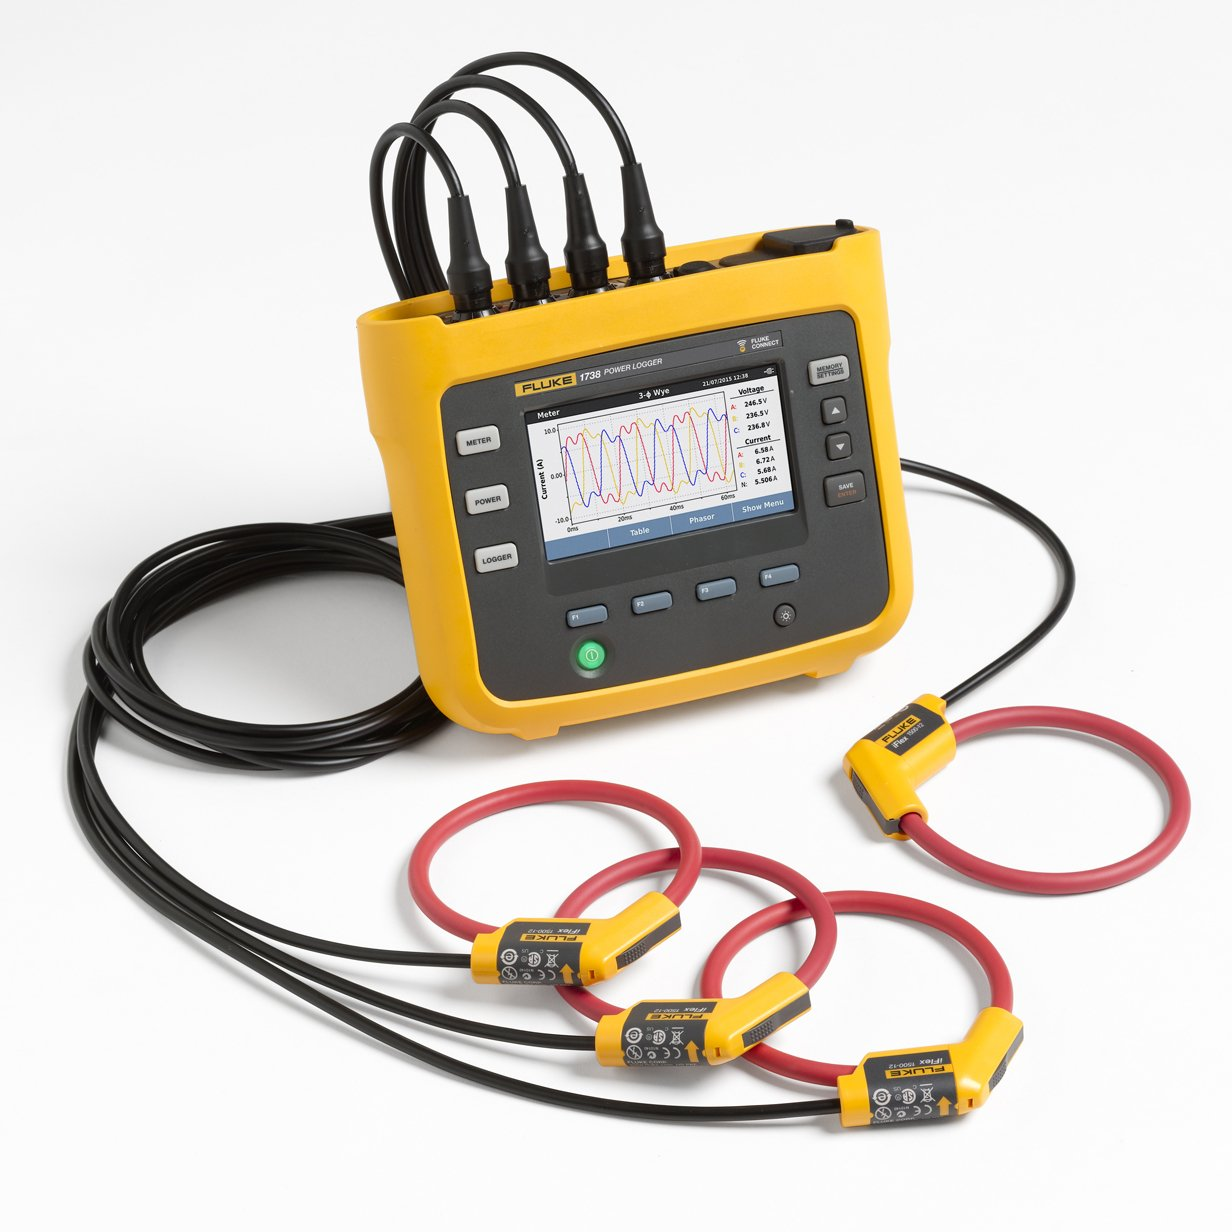 Three Phase Electricity Meter : Portable power meters in ireland fluke unipower gossen